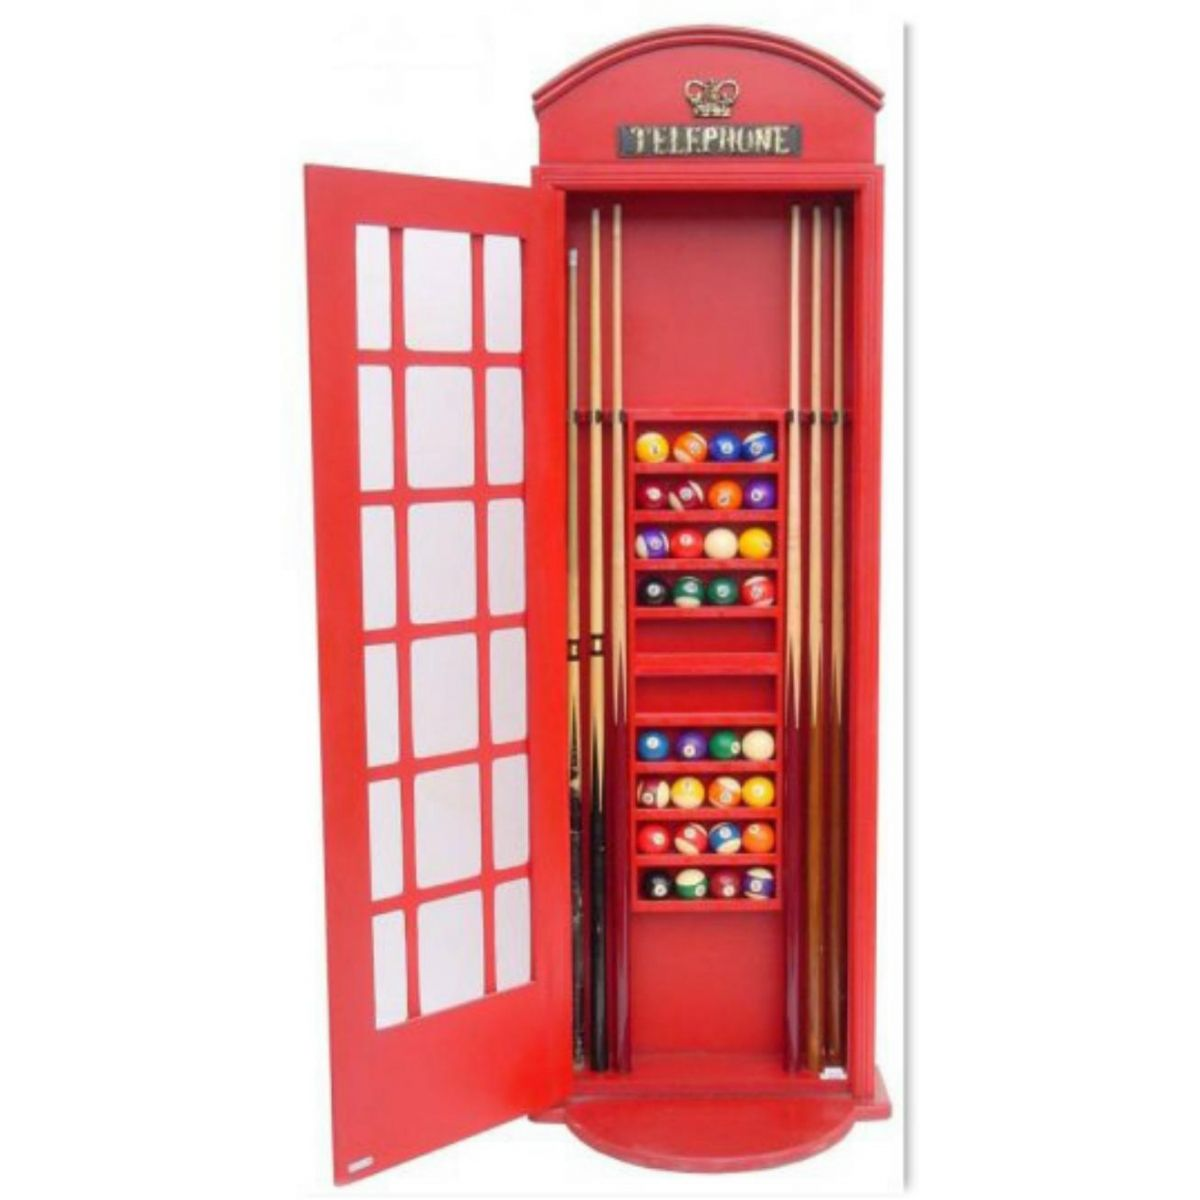 Wall Mounted Red English Phone Booth Billiards Pool Table Cabinet For Balls  Cue Sticks Chalk